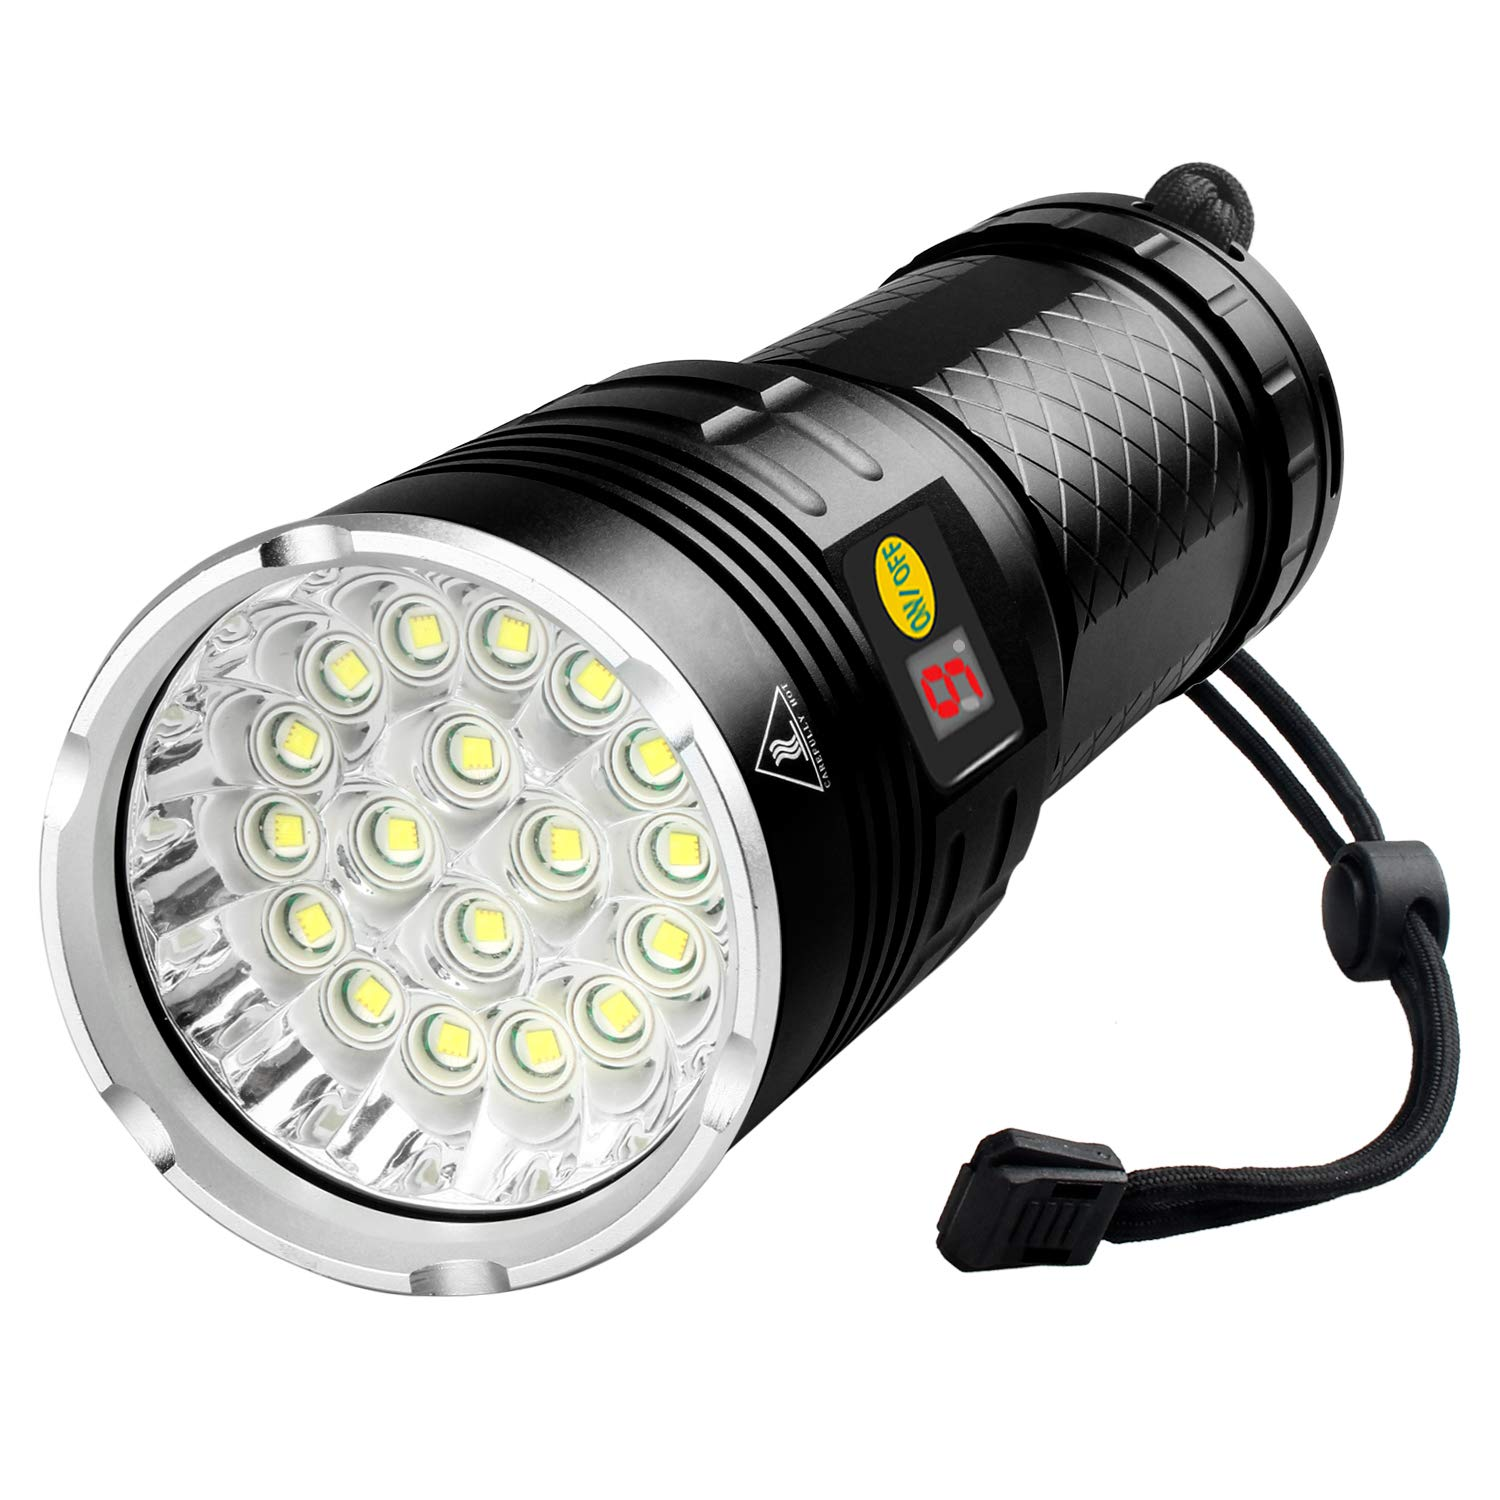 10000 Lumen Flashlight, 18 LEDs Super Bright, Power Display, Built-in battery, USB Rechargeable by Woputne